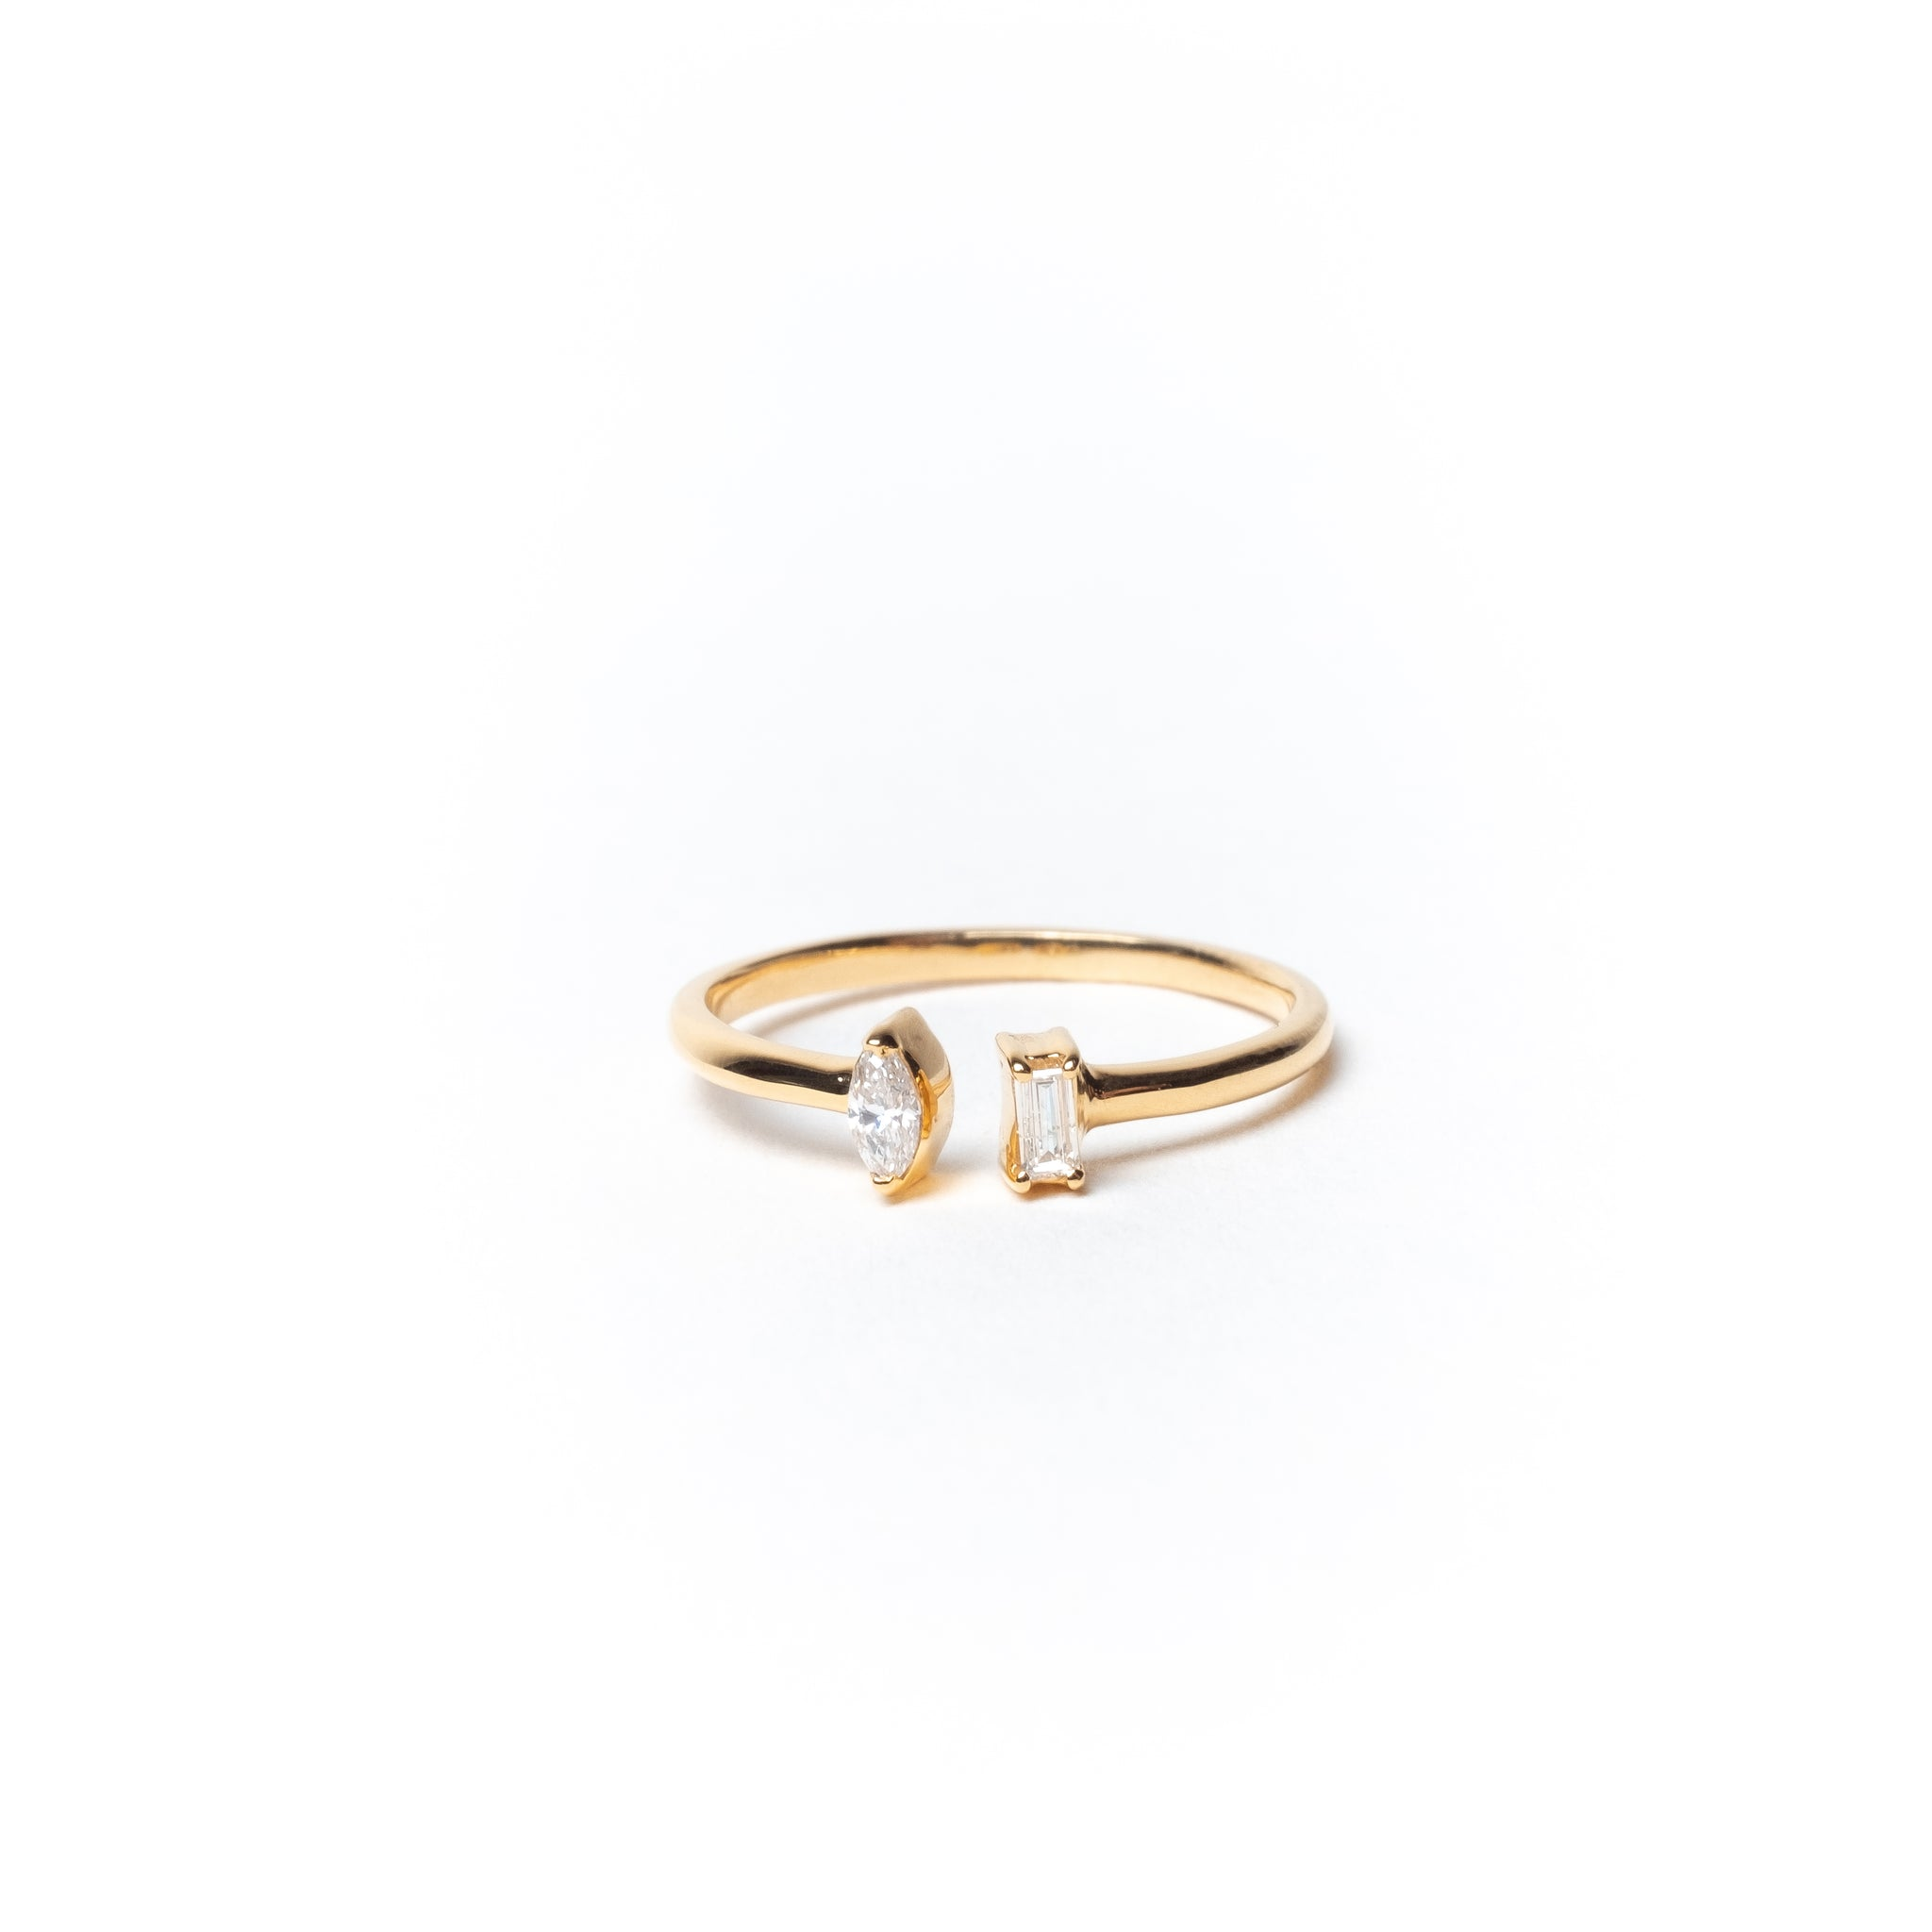 Open Ring with Marquise and Baguette Diamonds, Solid 14k Gold | LIMITED (5068193529900)